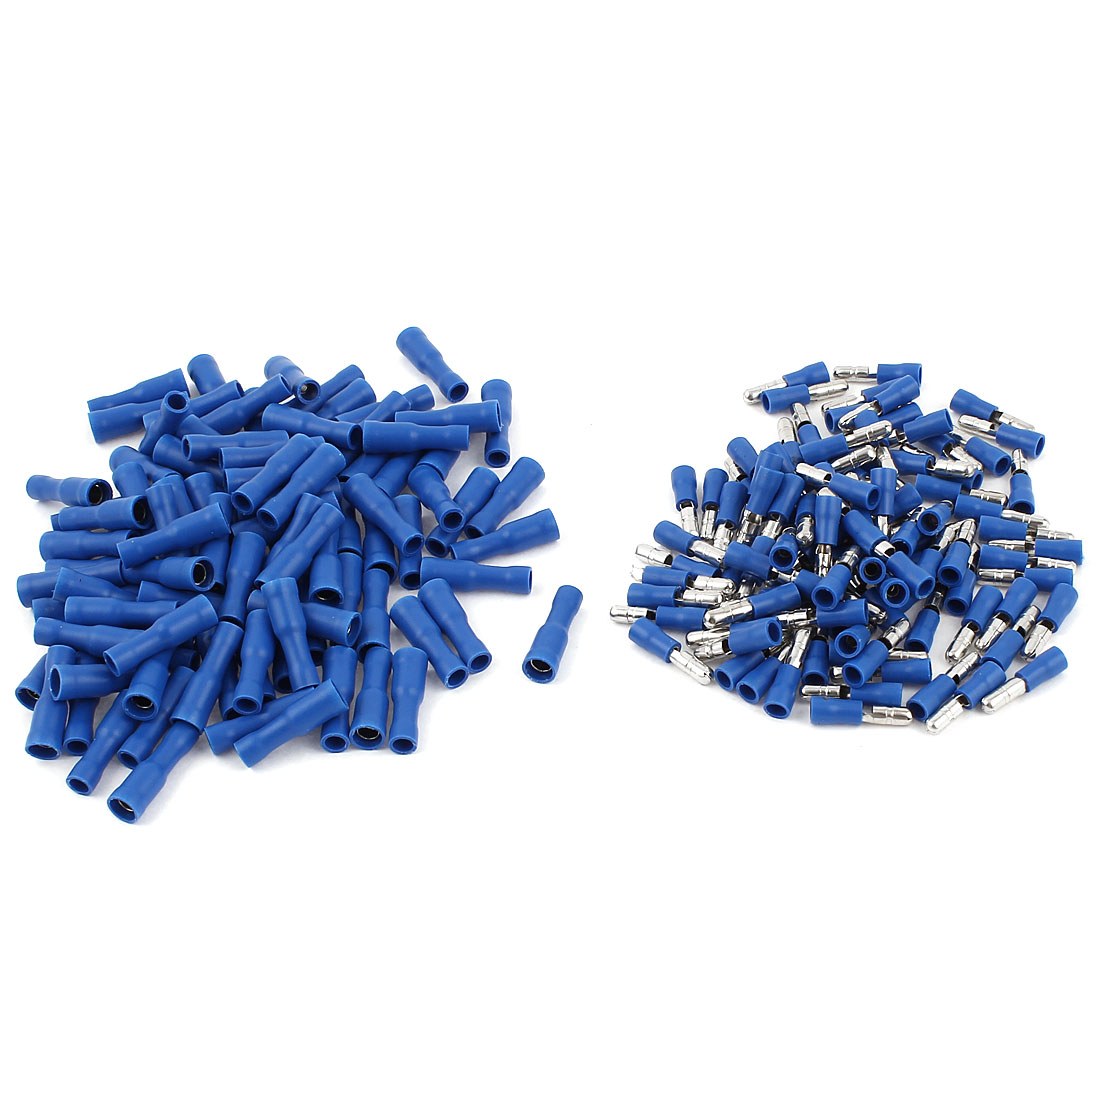 100 Pair 22-16 AWG Cable Wire Connector Male Female Crimp Terminals Blue